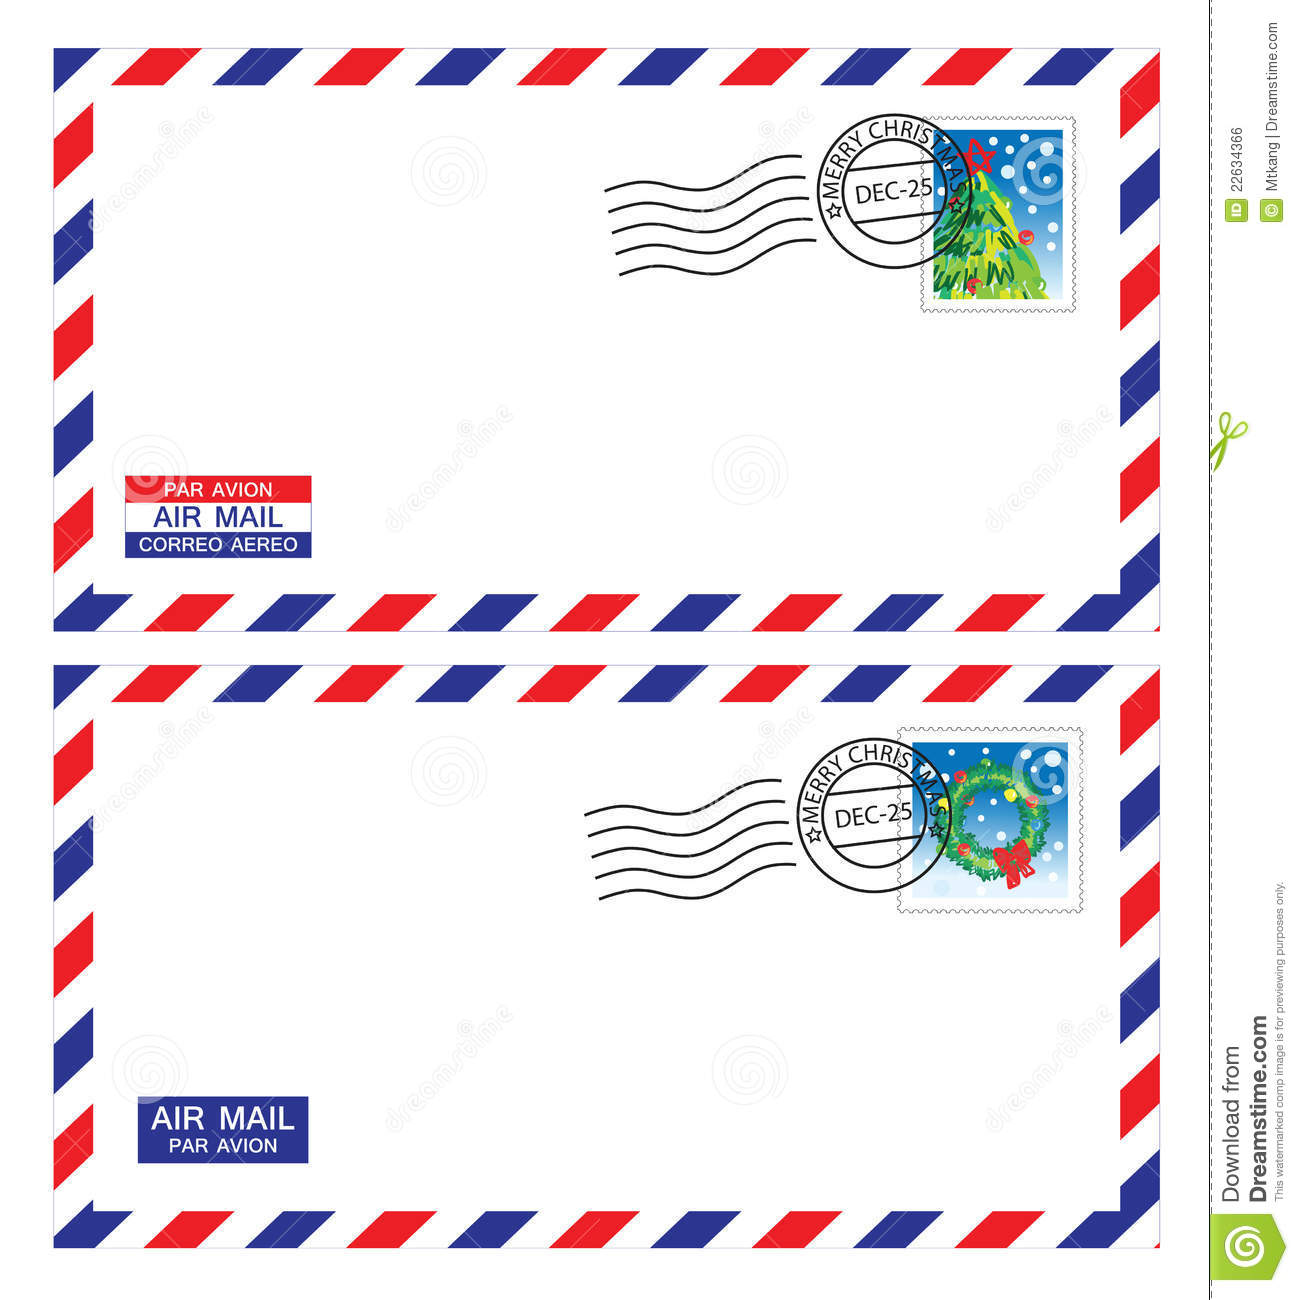 Christmas Airmail Envelope Stock Illustration Illustration Of Address 22634366